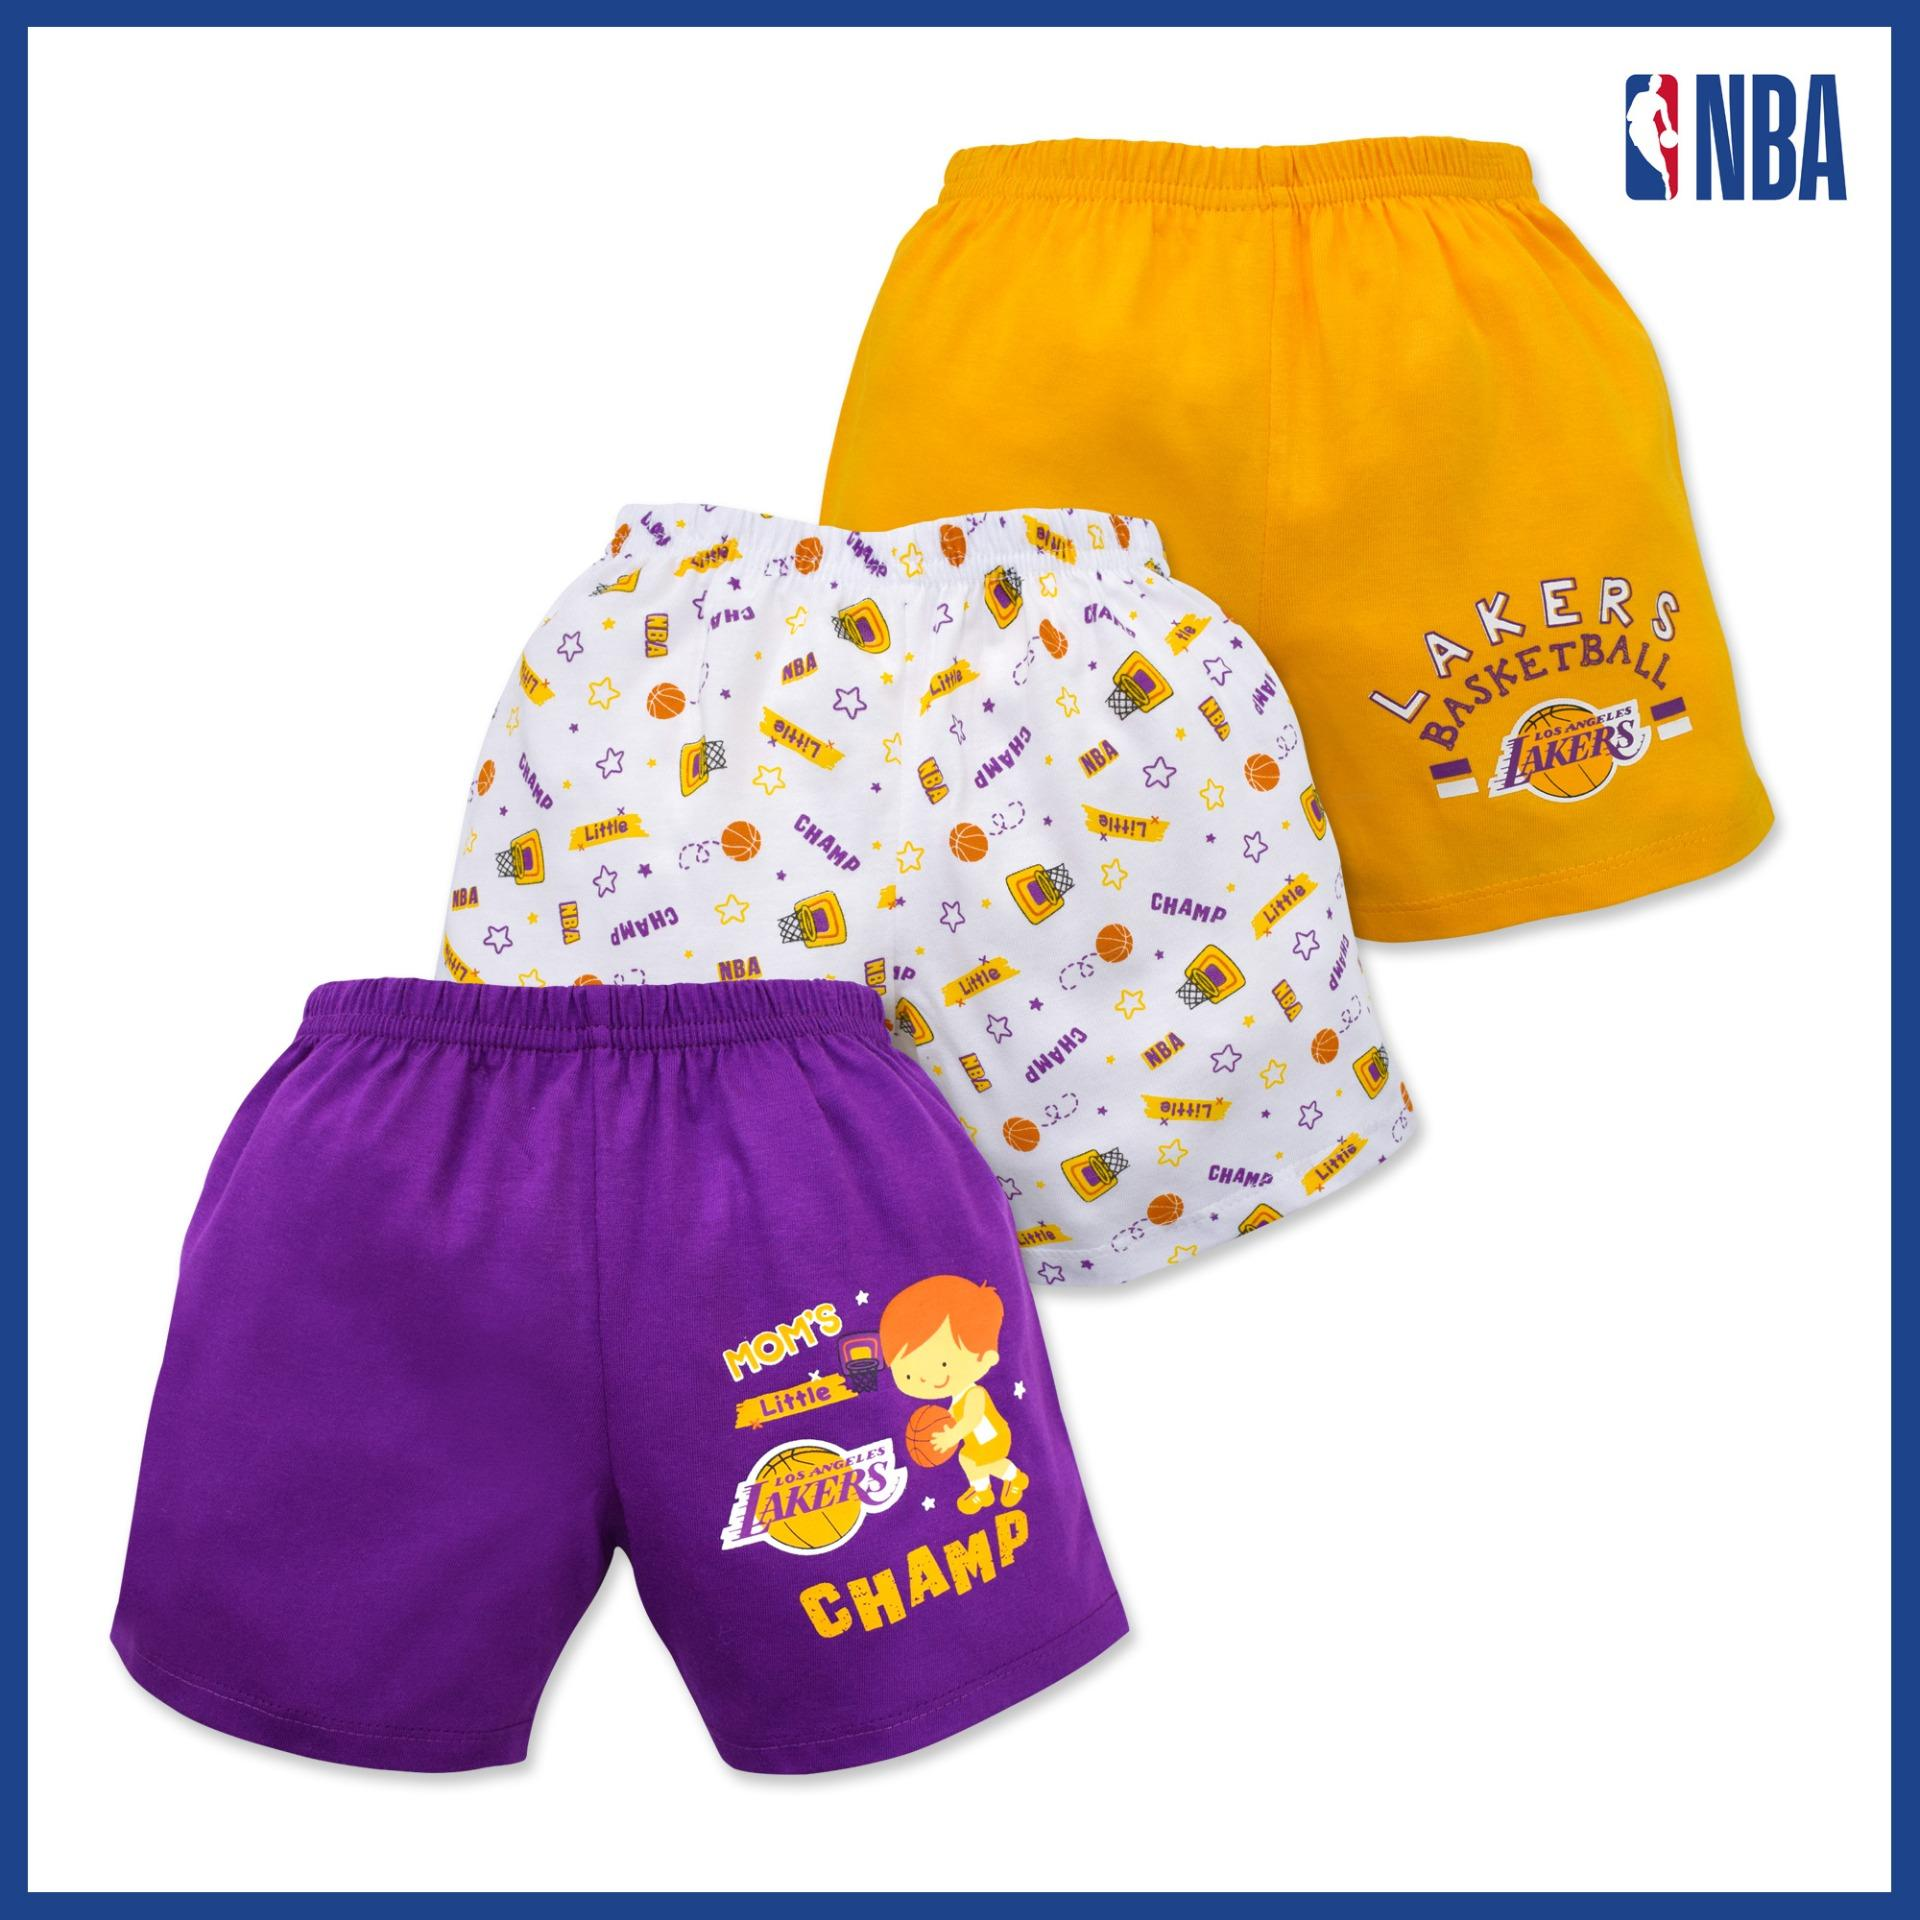 Nba Baby - 3-Piece Shorts (moms Little Champ - Lakers) By Cotton Stuff.